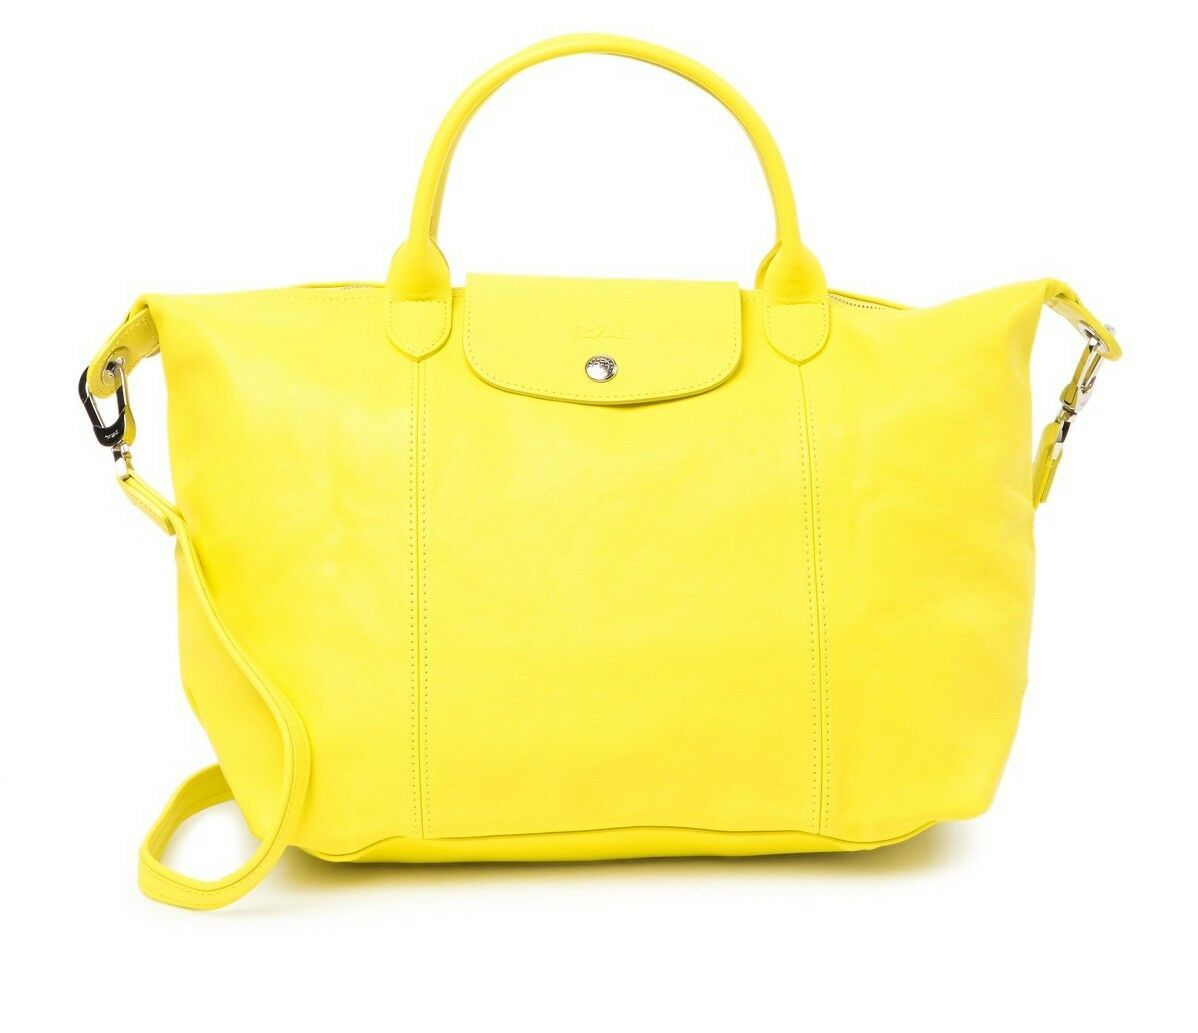 Primary image for NWT LONGCHAMP Le Pliage Cuir Med Leather Crossbody LEMON YELLOW $600+ AUTHENTIC!